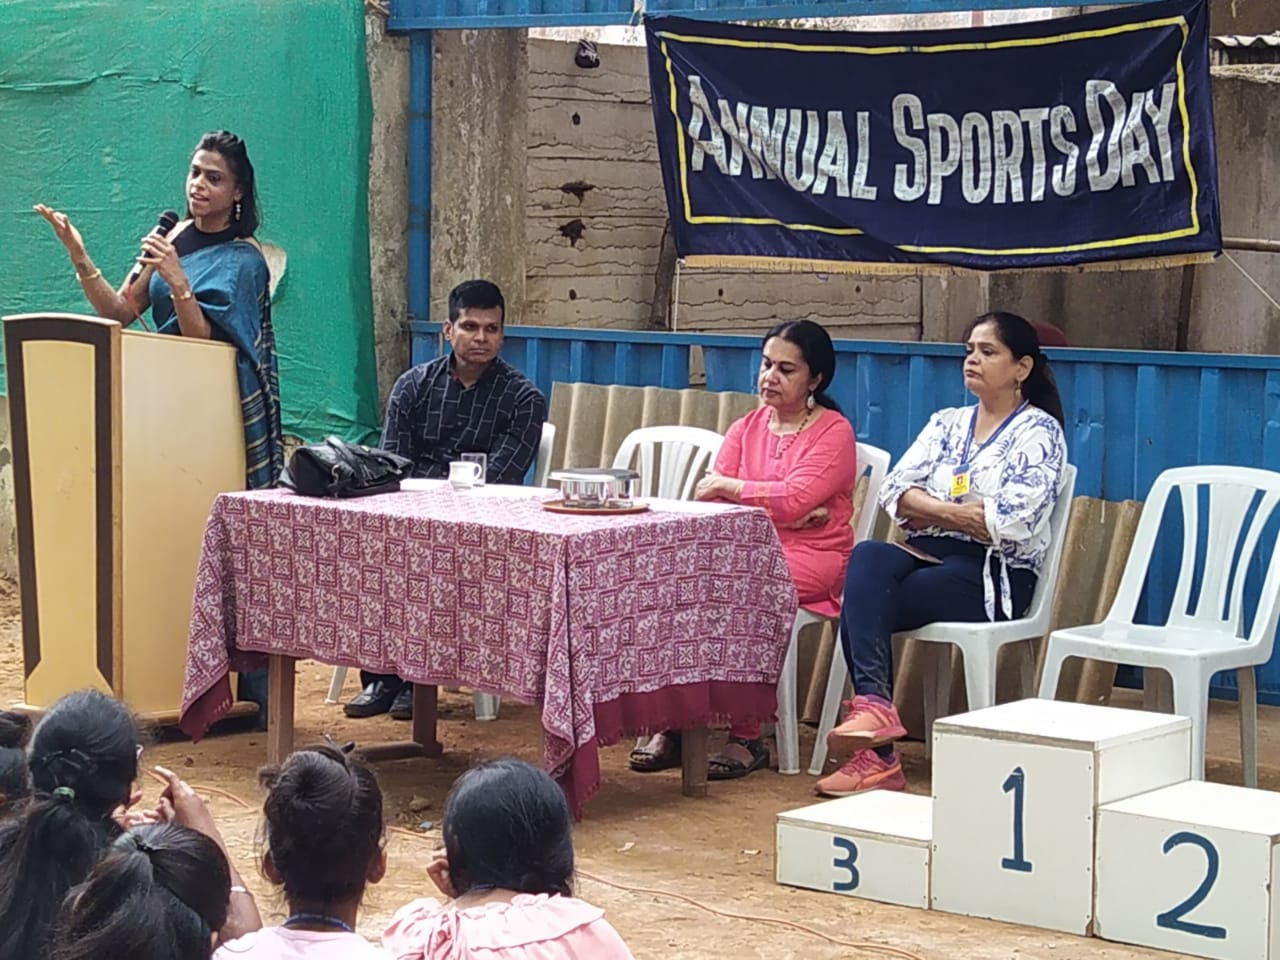 On occasion of Annual Sports Festival Chief guest Ms. Deepa Sapre, Sports Nutritionist & Fitness Athlete was invited.